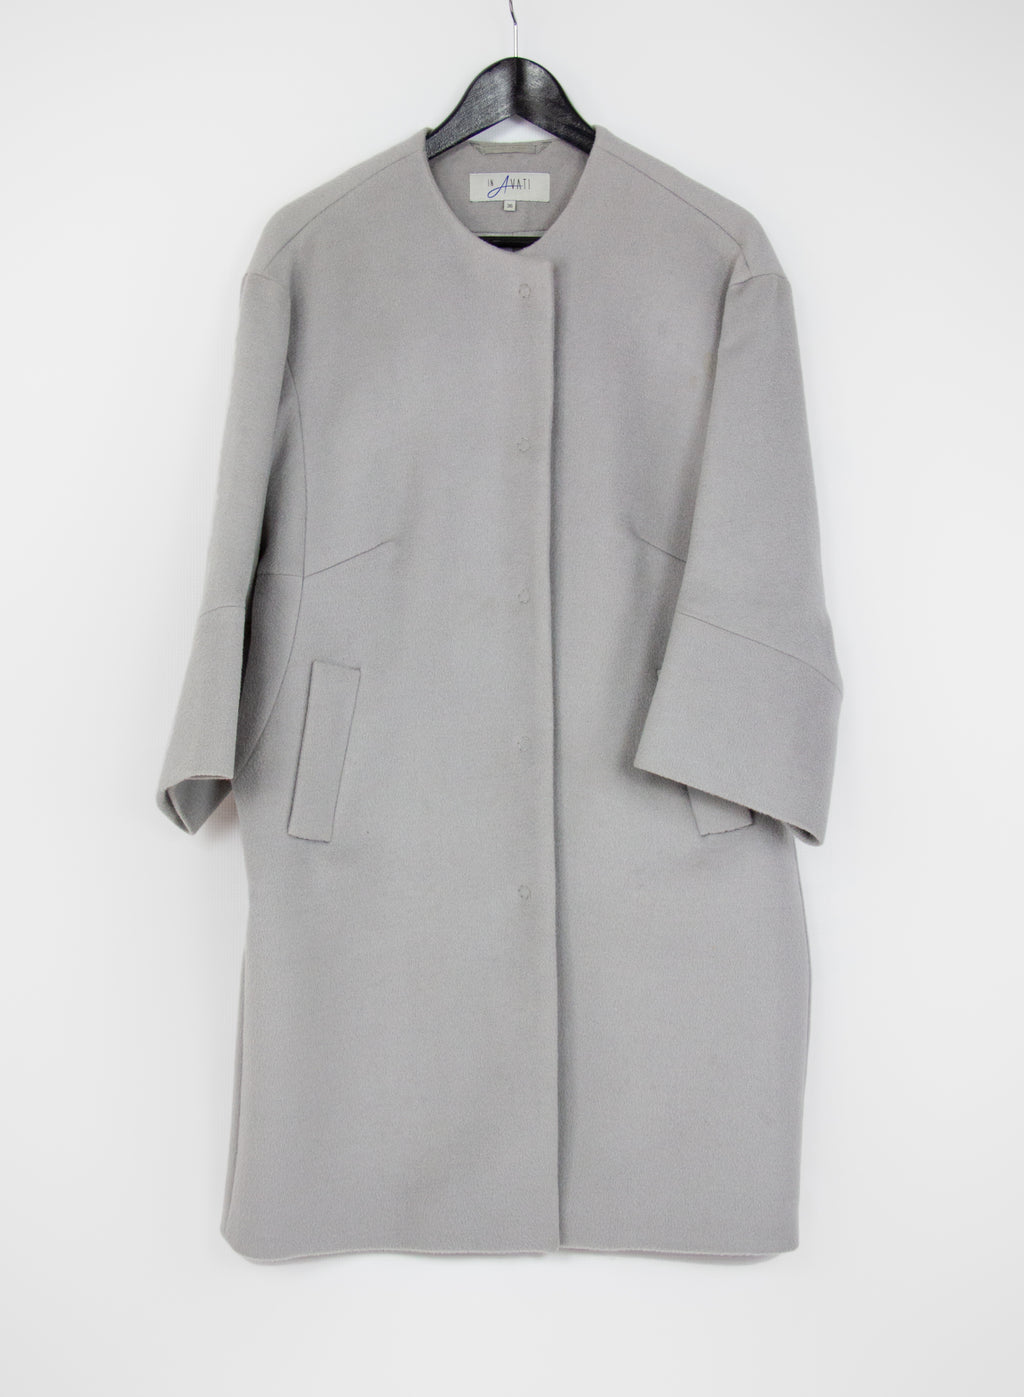 In Avati Cocoon Shape Brushed Wool Coat, SIZE S - second_first